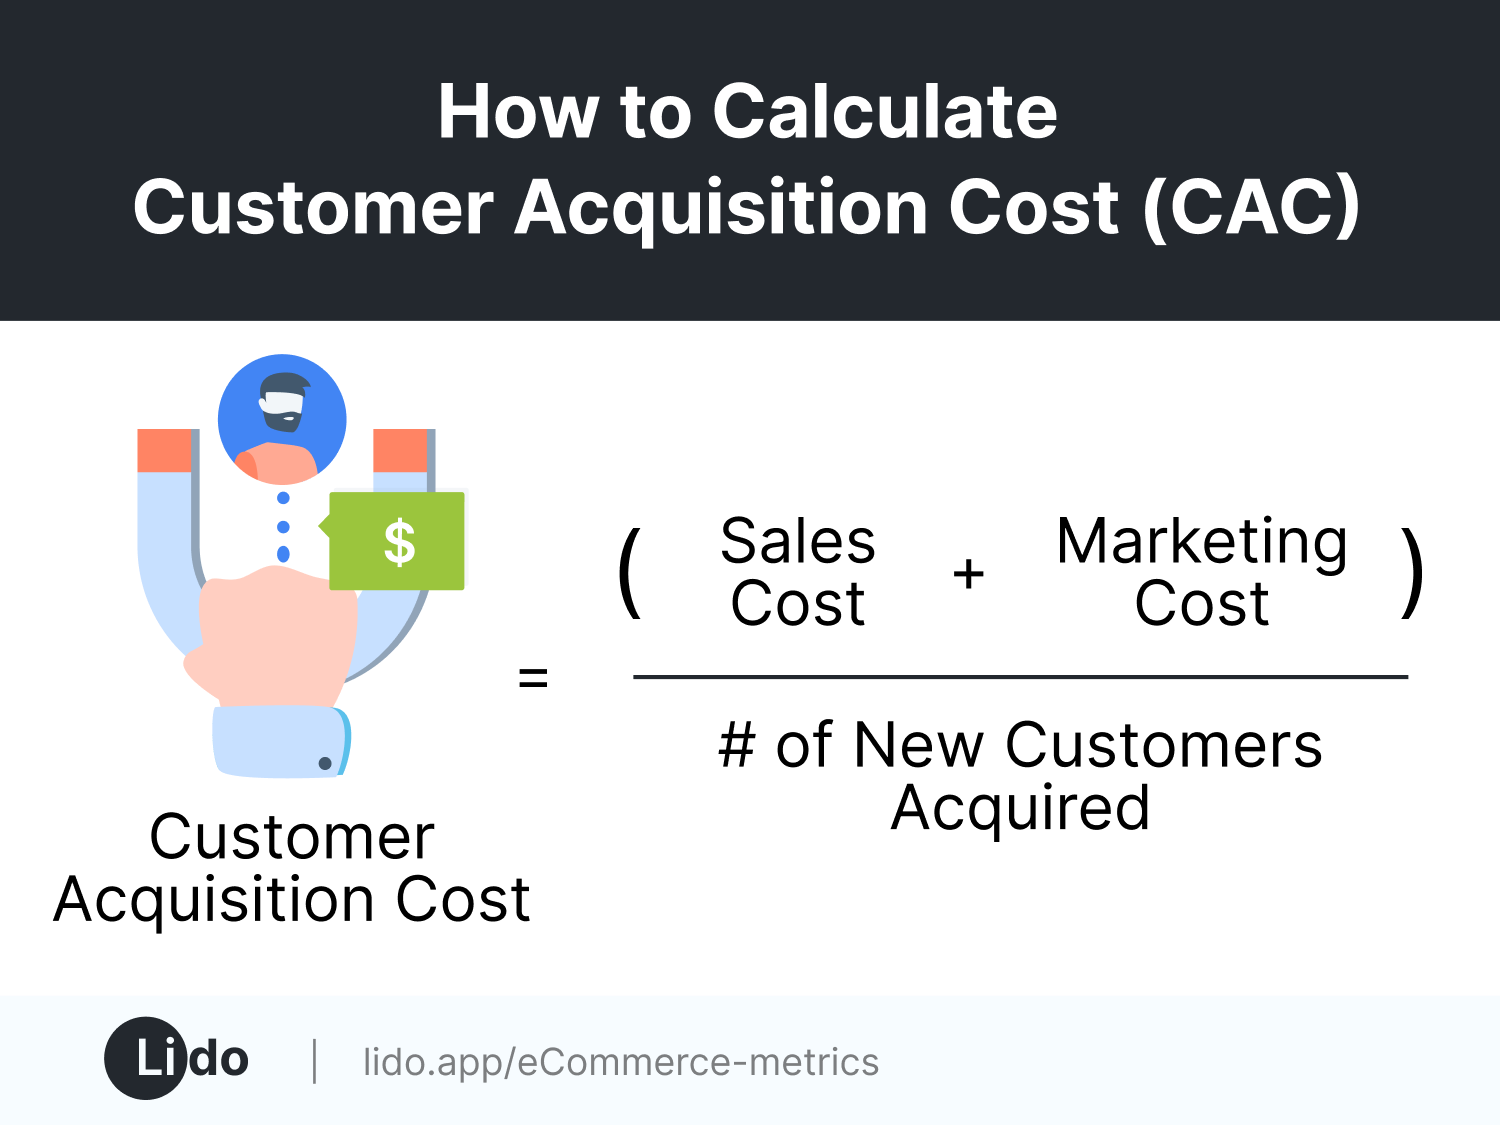 Lido-branded customer acquisition cost equation (CAC = (total sales cost + total marketing cost) / # of new customers acquired)